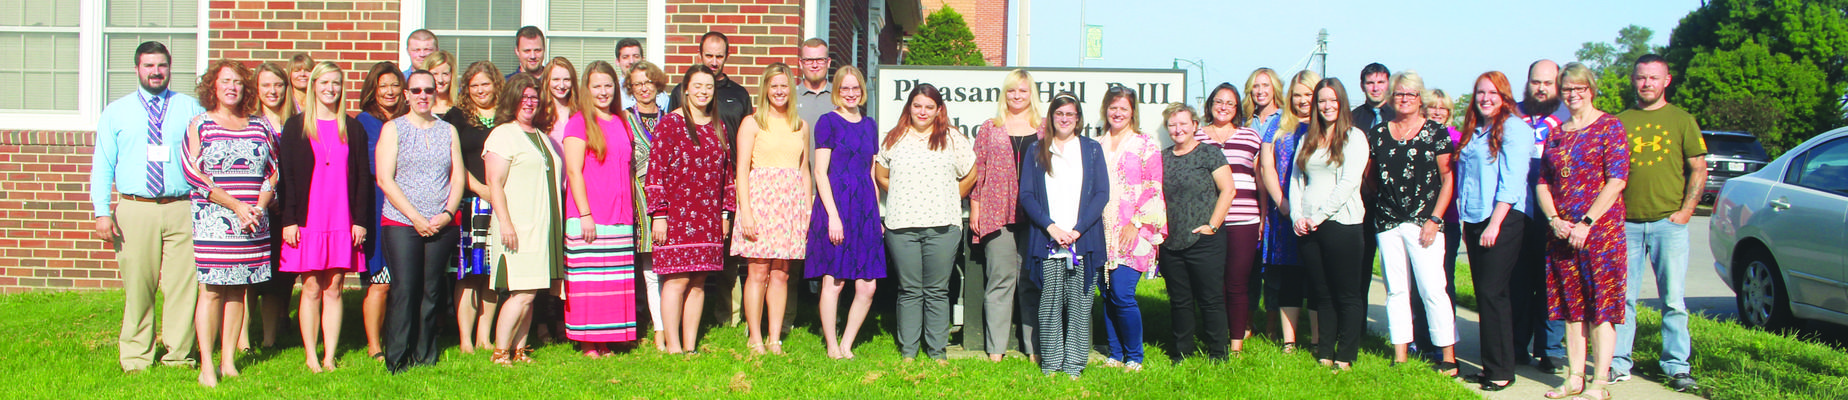 District welcomes new staff